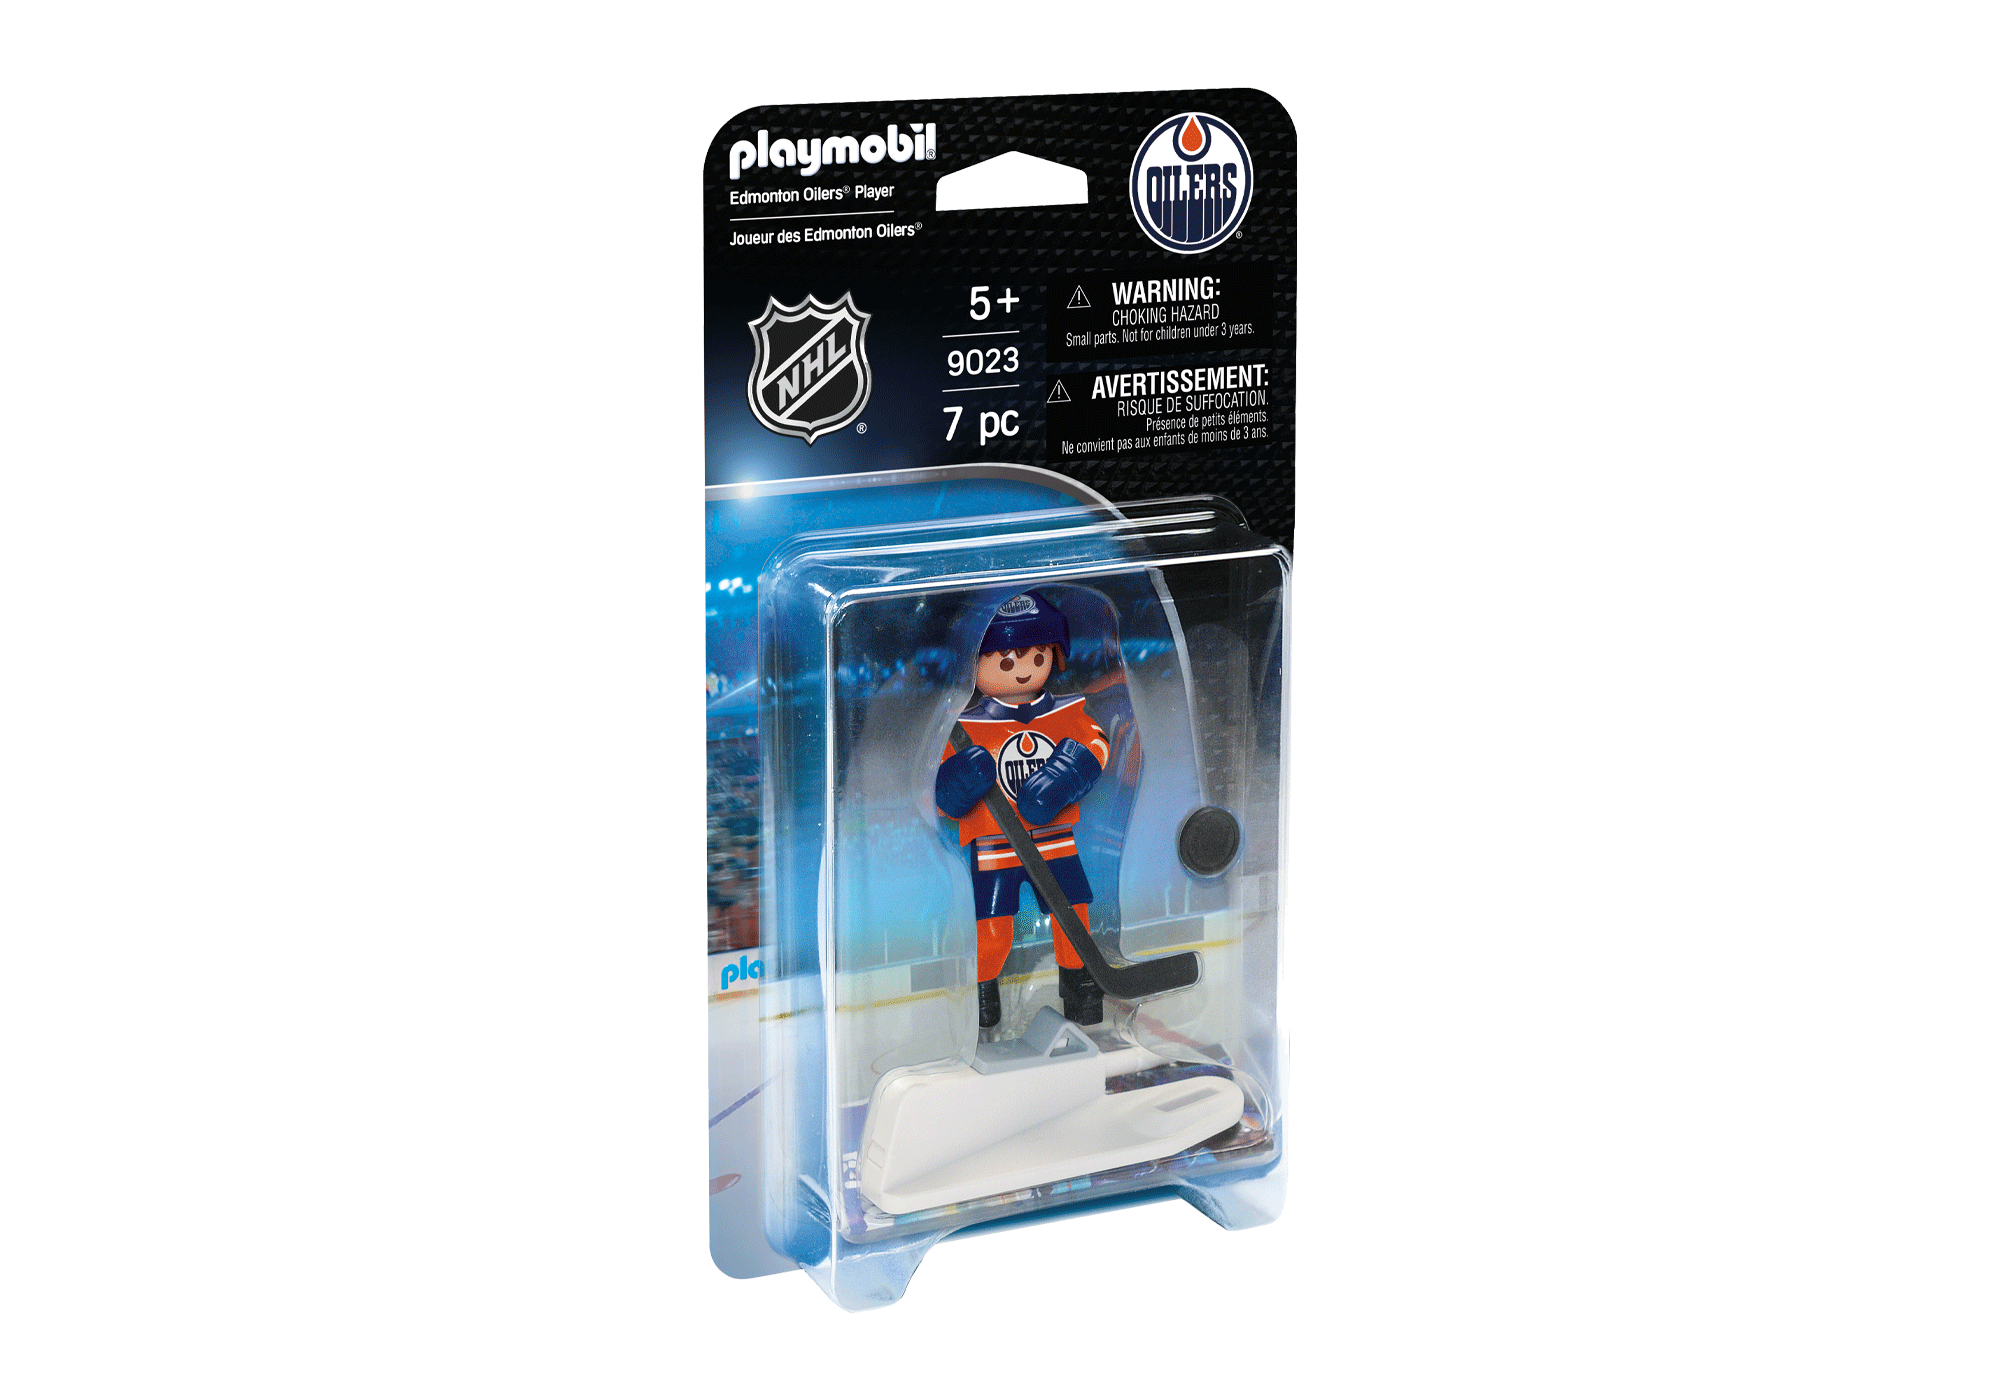 http://media.playmobil.com/i/playmobil/9023_product_box_front/NHL® Edmonton Oilers® Player